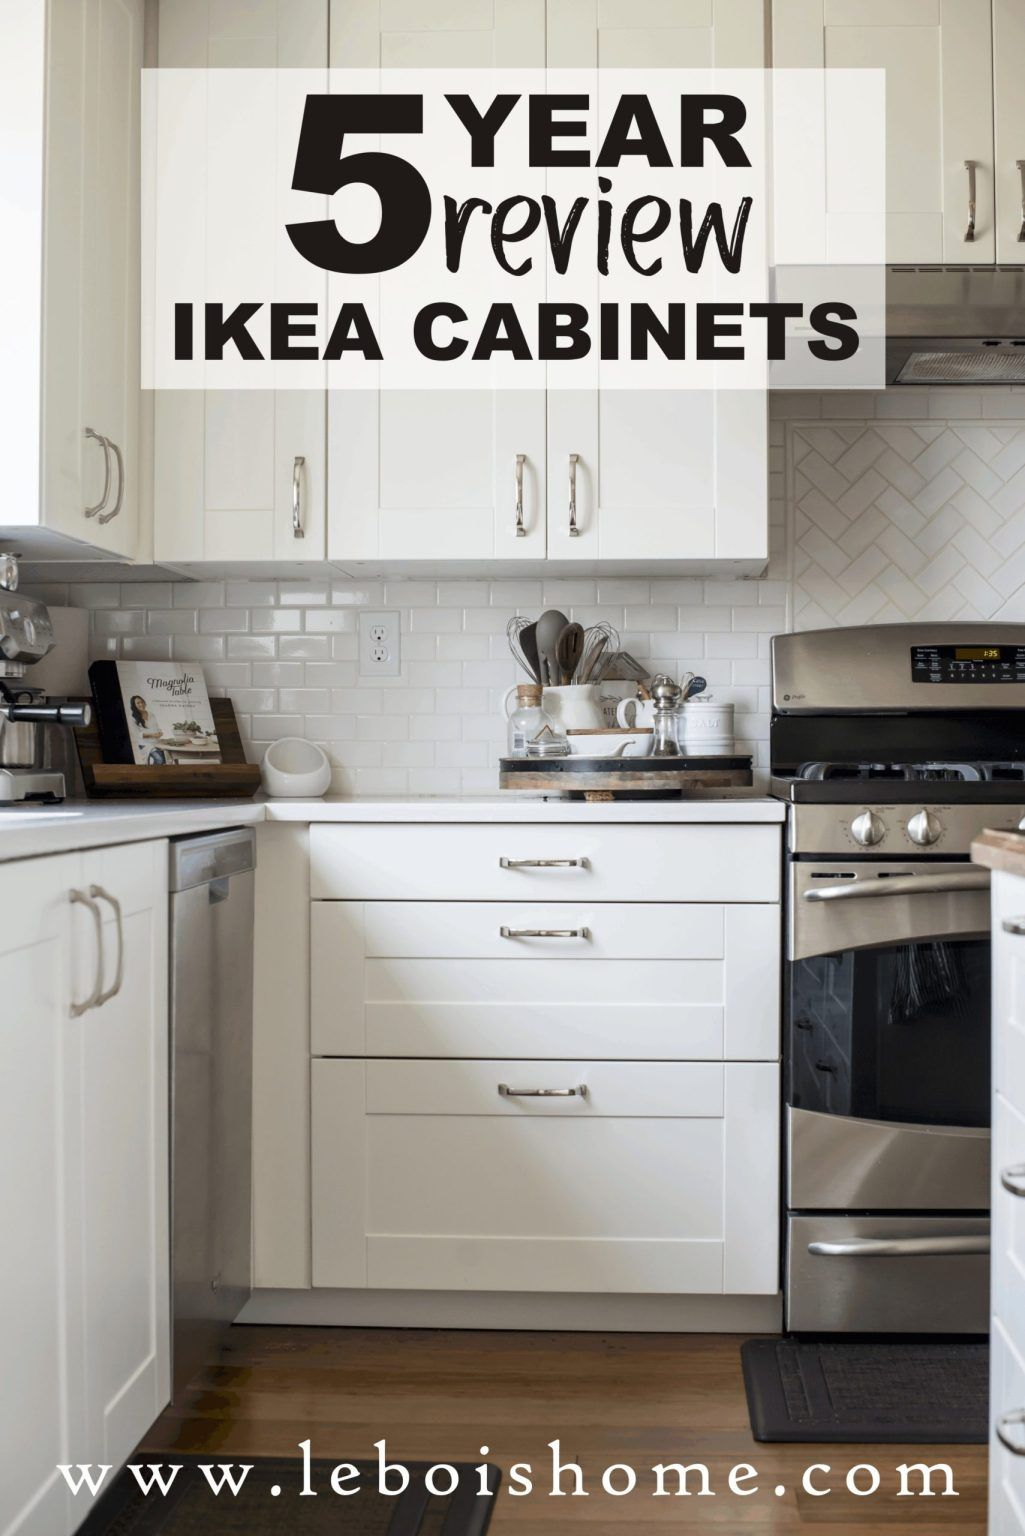 5 Year IKEA Review • Le Bois Home in 2020 Ikea